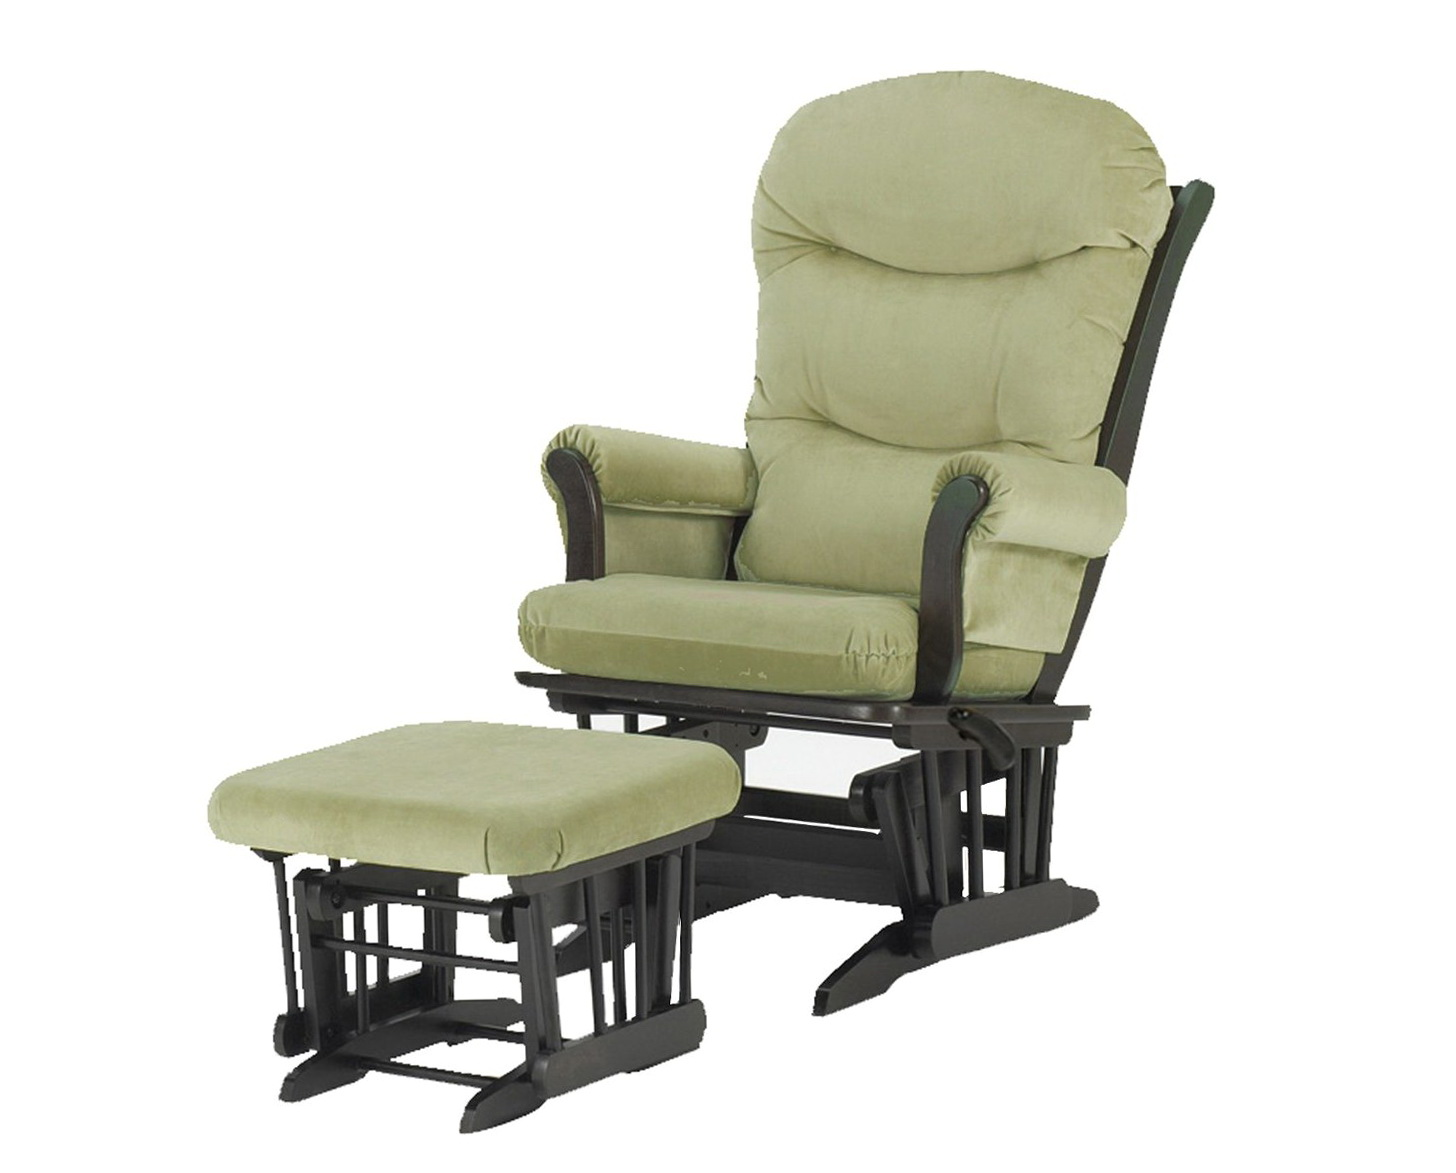 glider chair and ottoman replacement cushions staples ergonomic office chairs dutailier set home design ideas